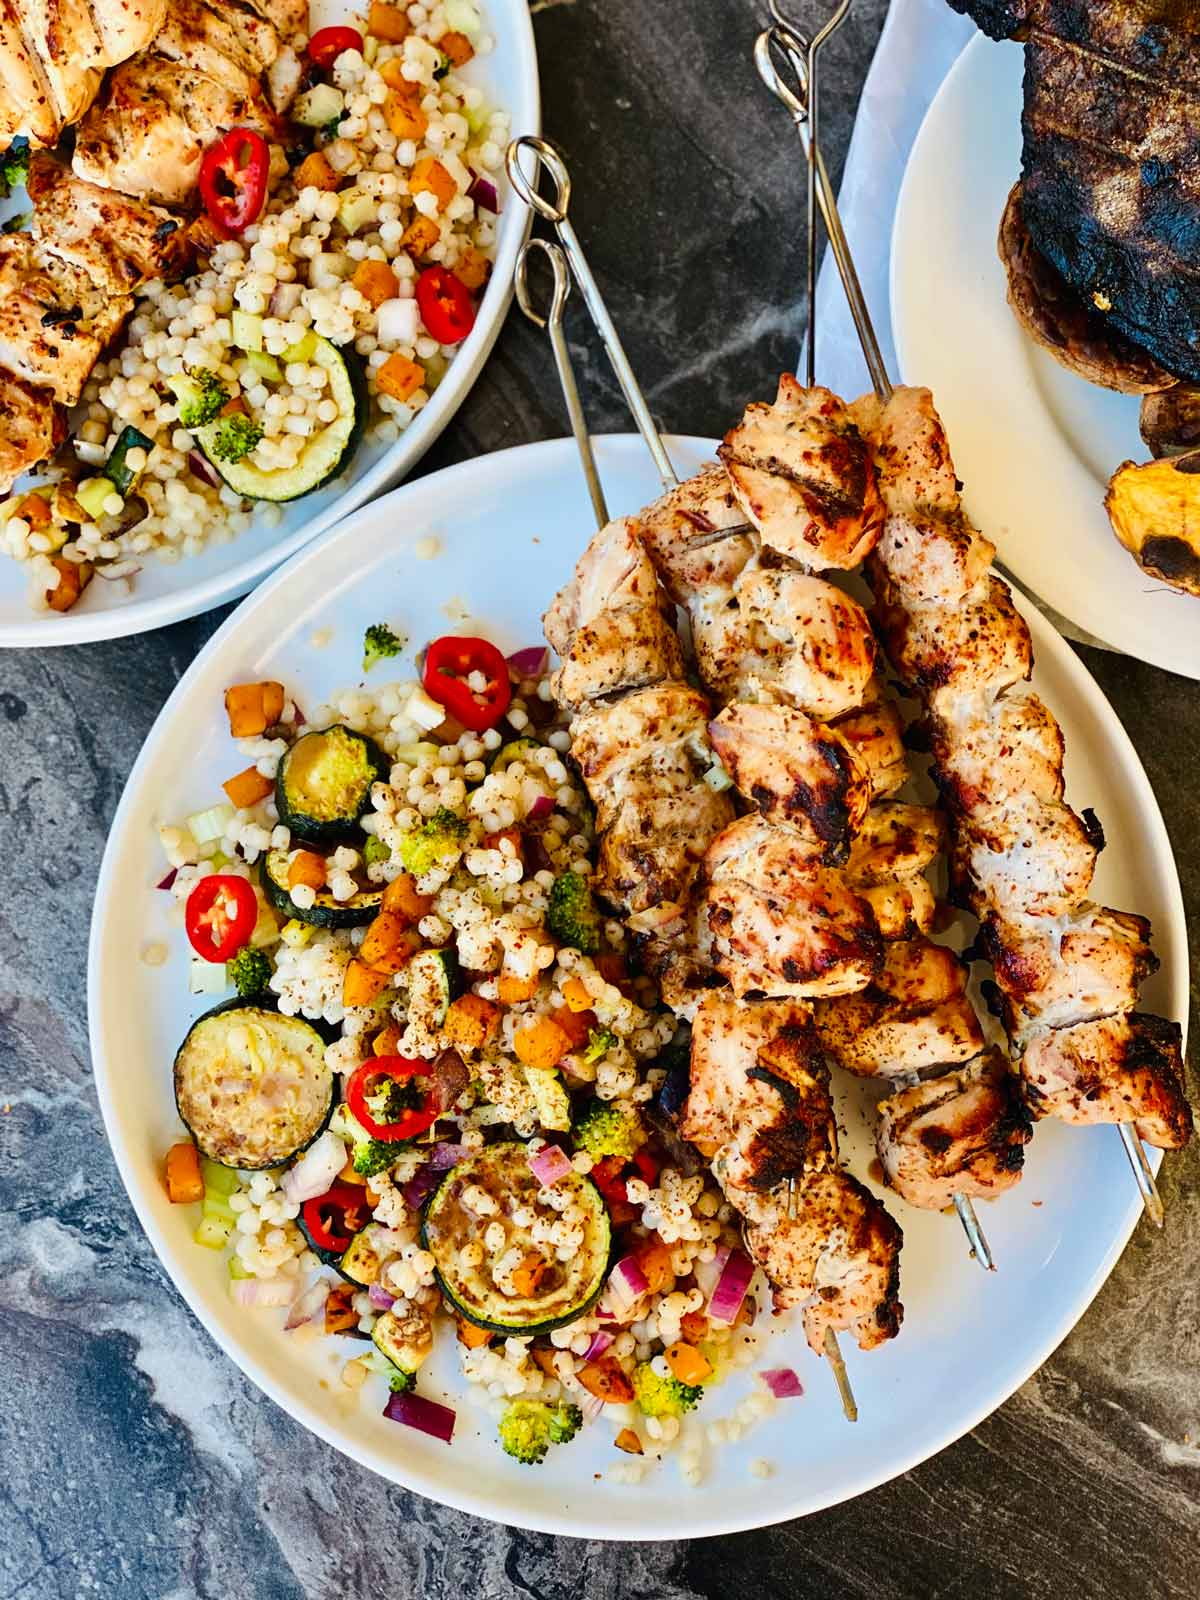 4 Chicken kebabs on a white plate with mixed vegetable couscous